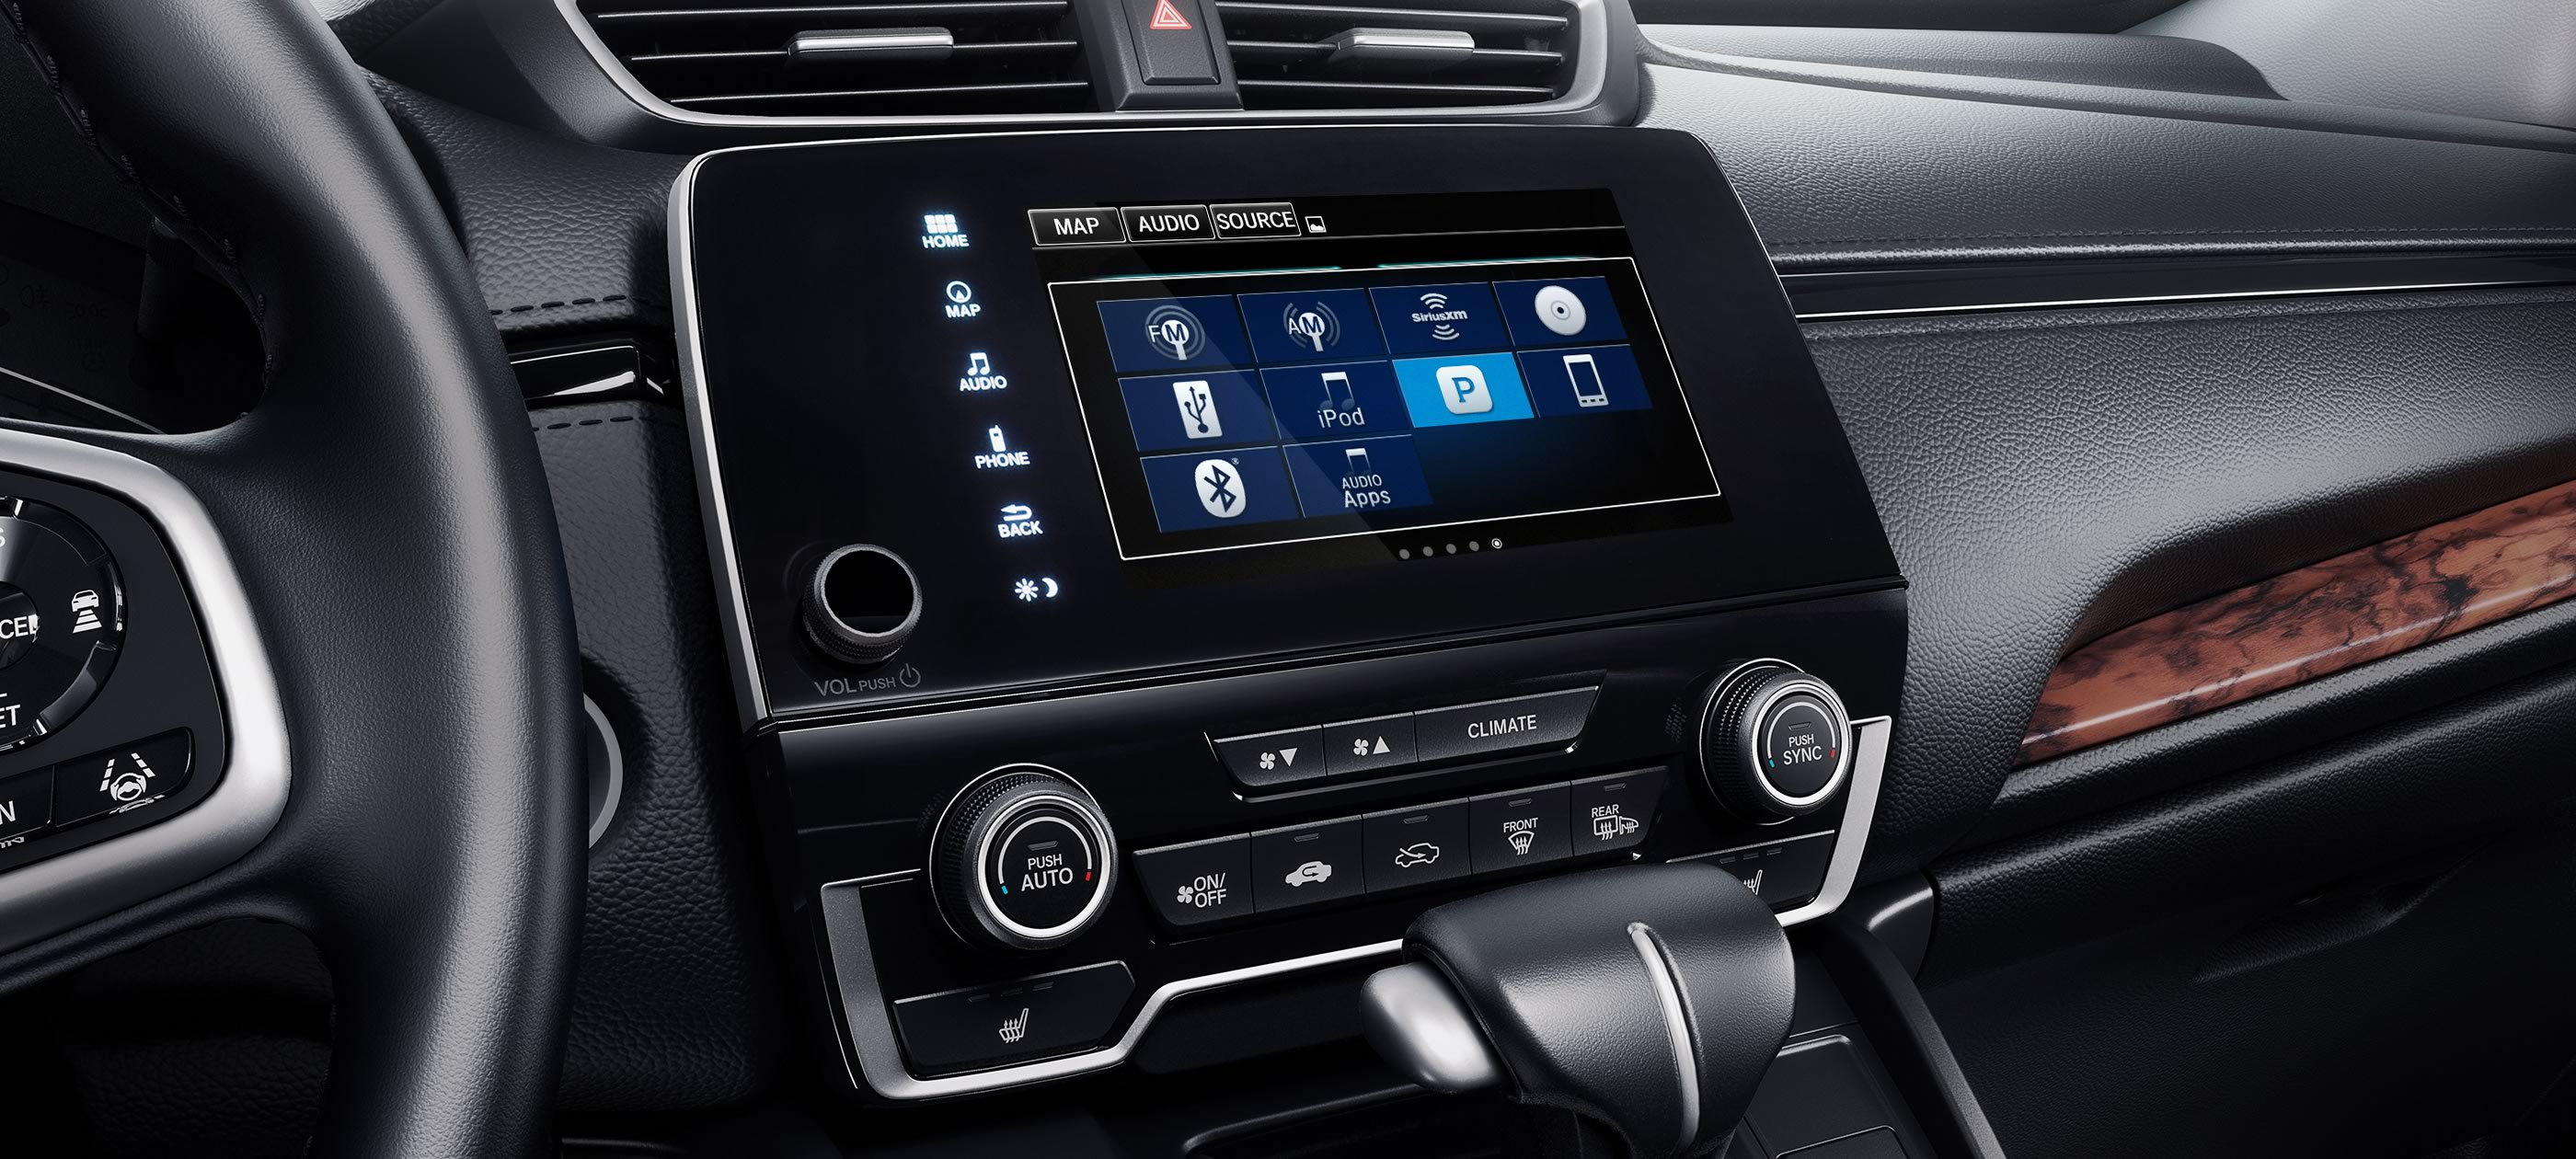 Display Audio Touchscreen